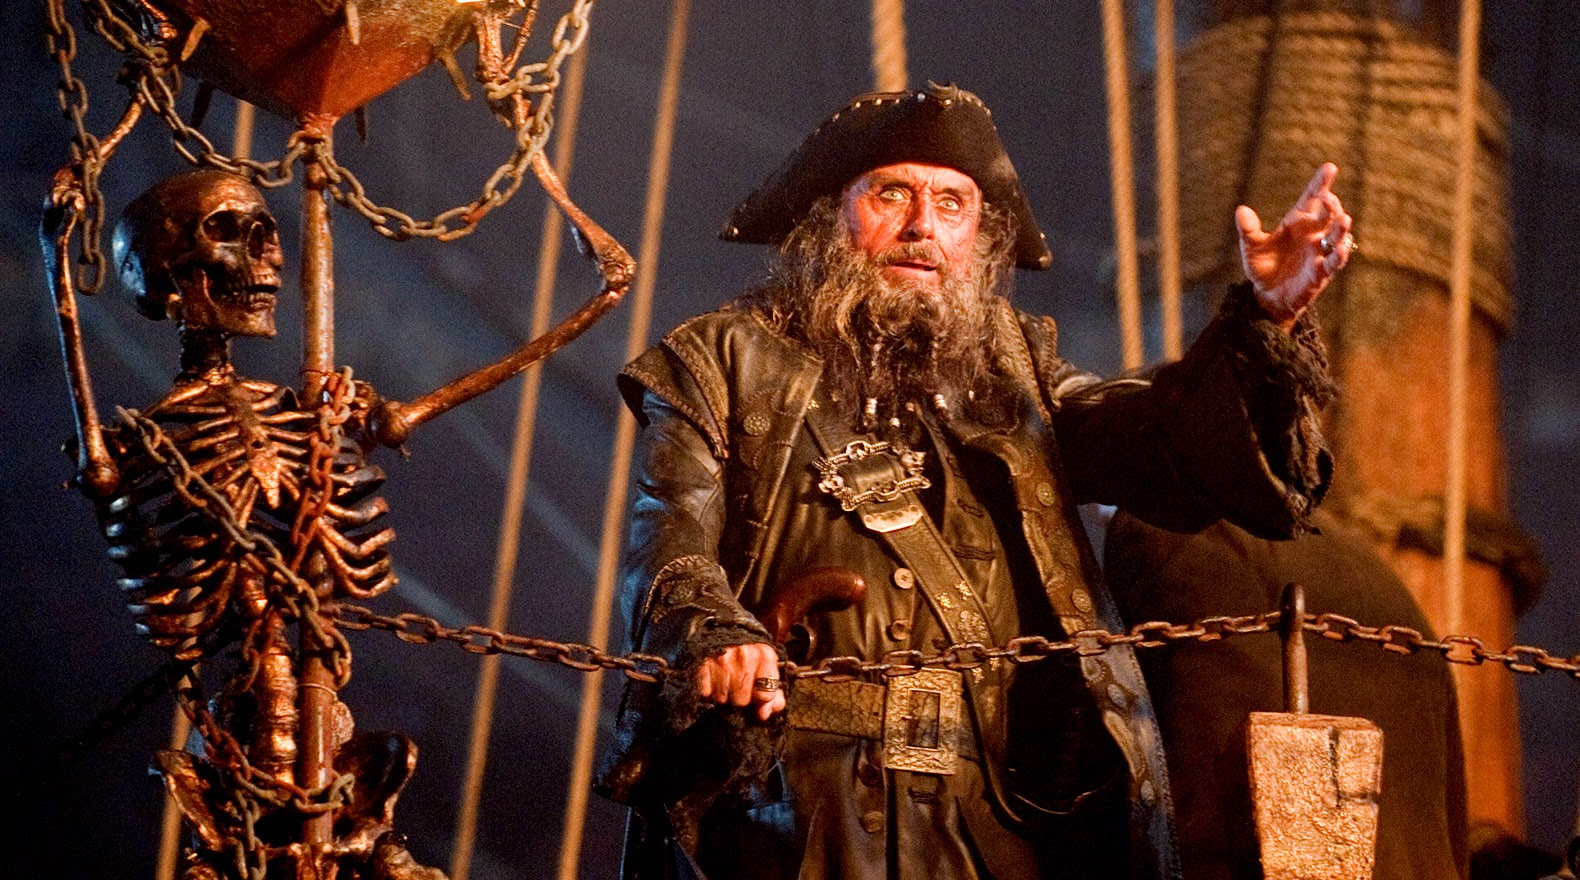 The fierce-looking Blackbeard stands next to a weathered skeleton.